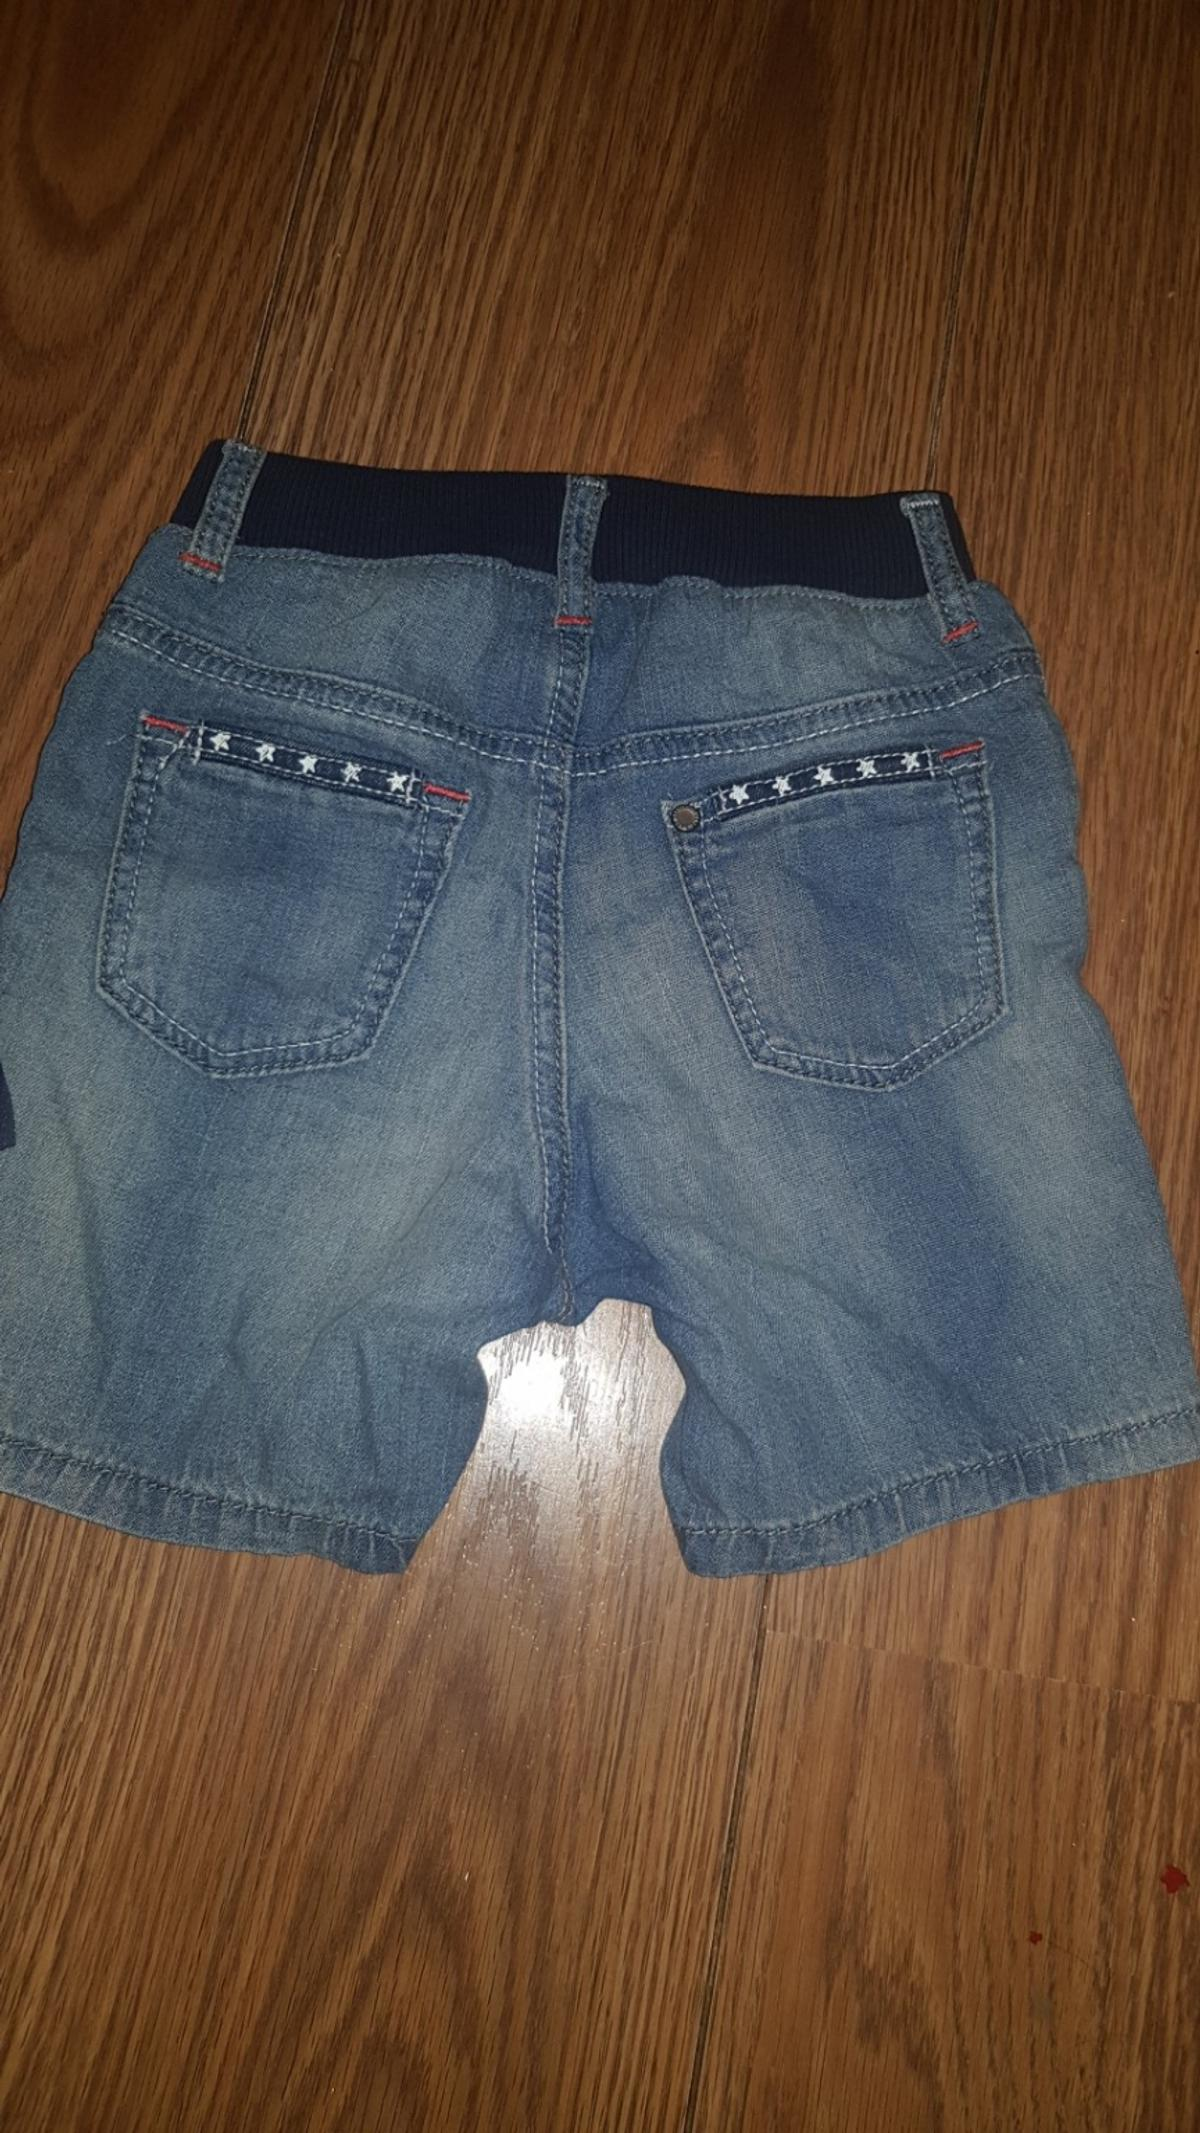 boys shorts from H&M  excellent condition  pirate motif and stars on pockets  collections S9 or can post